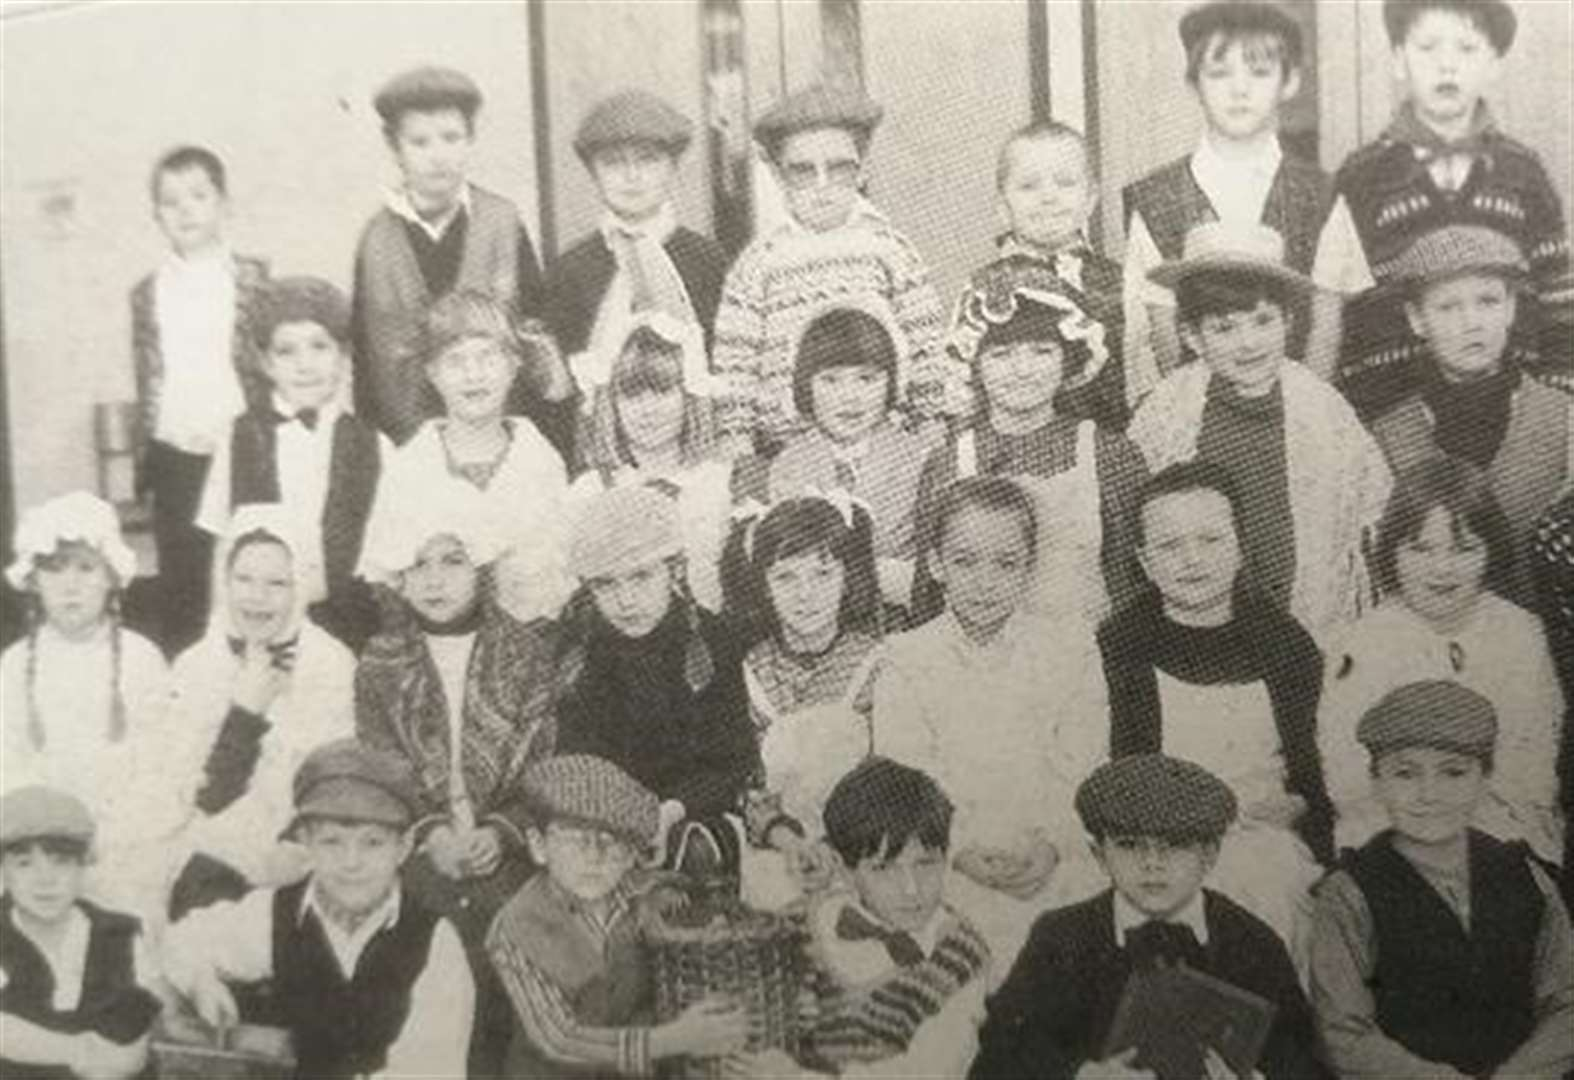 LOOKING BACK: Children go back to Victorian times